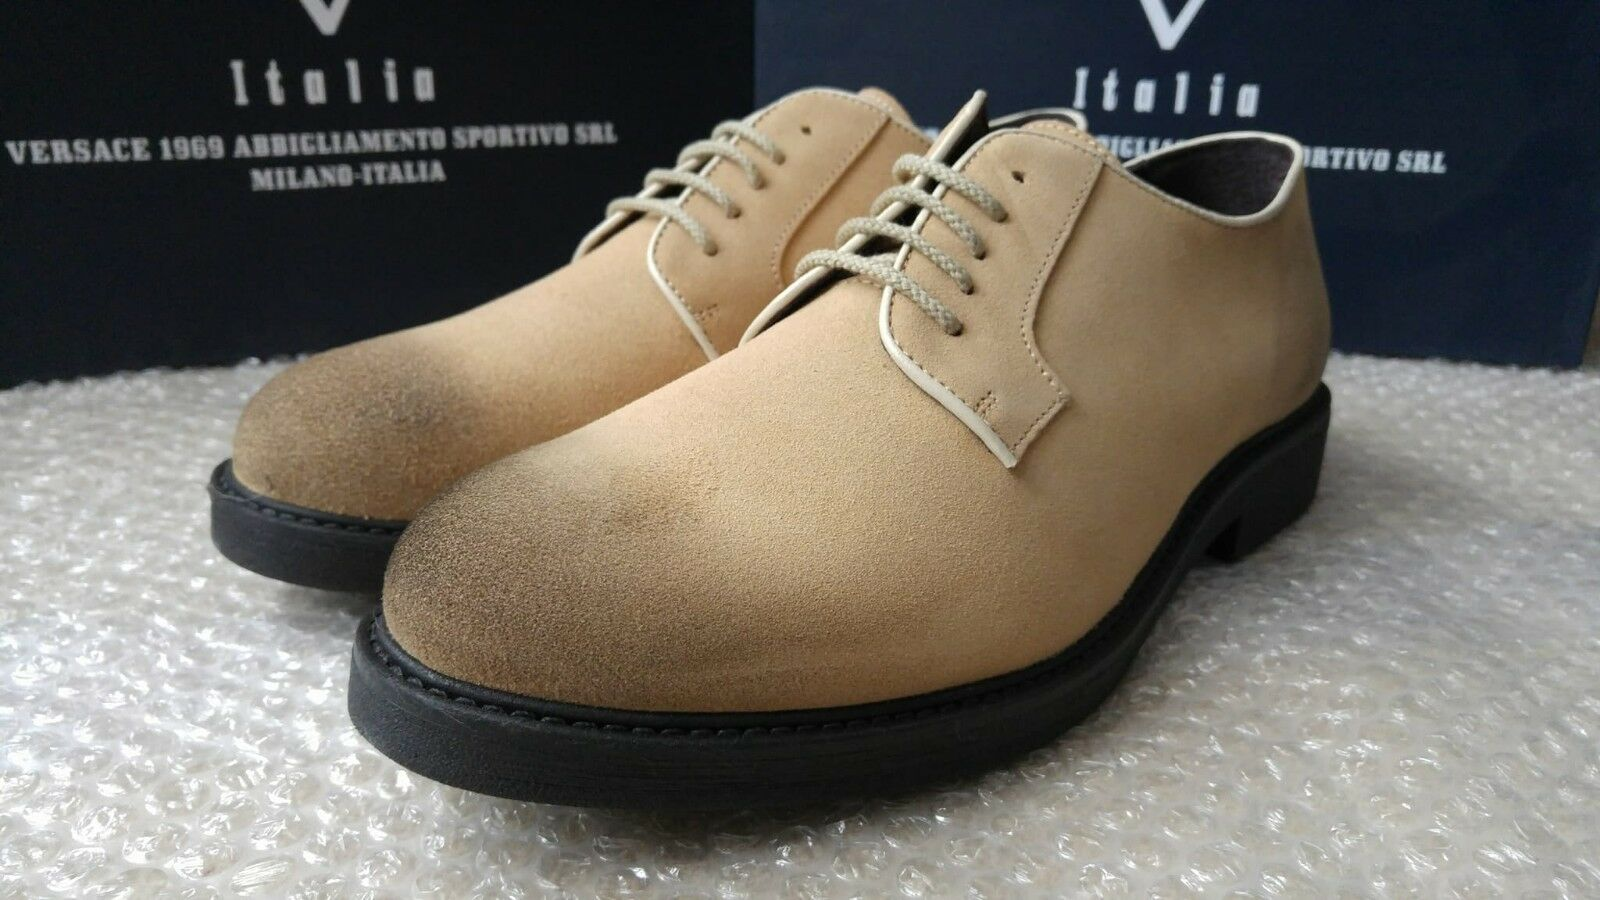 Versace 19.69 Italia men's light sole suede shoes size 43 - Made in